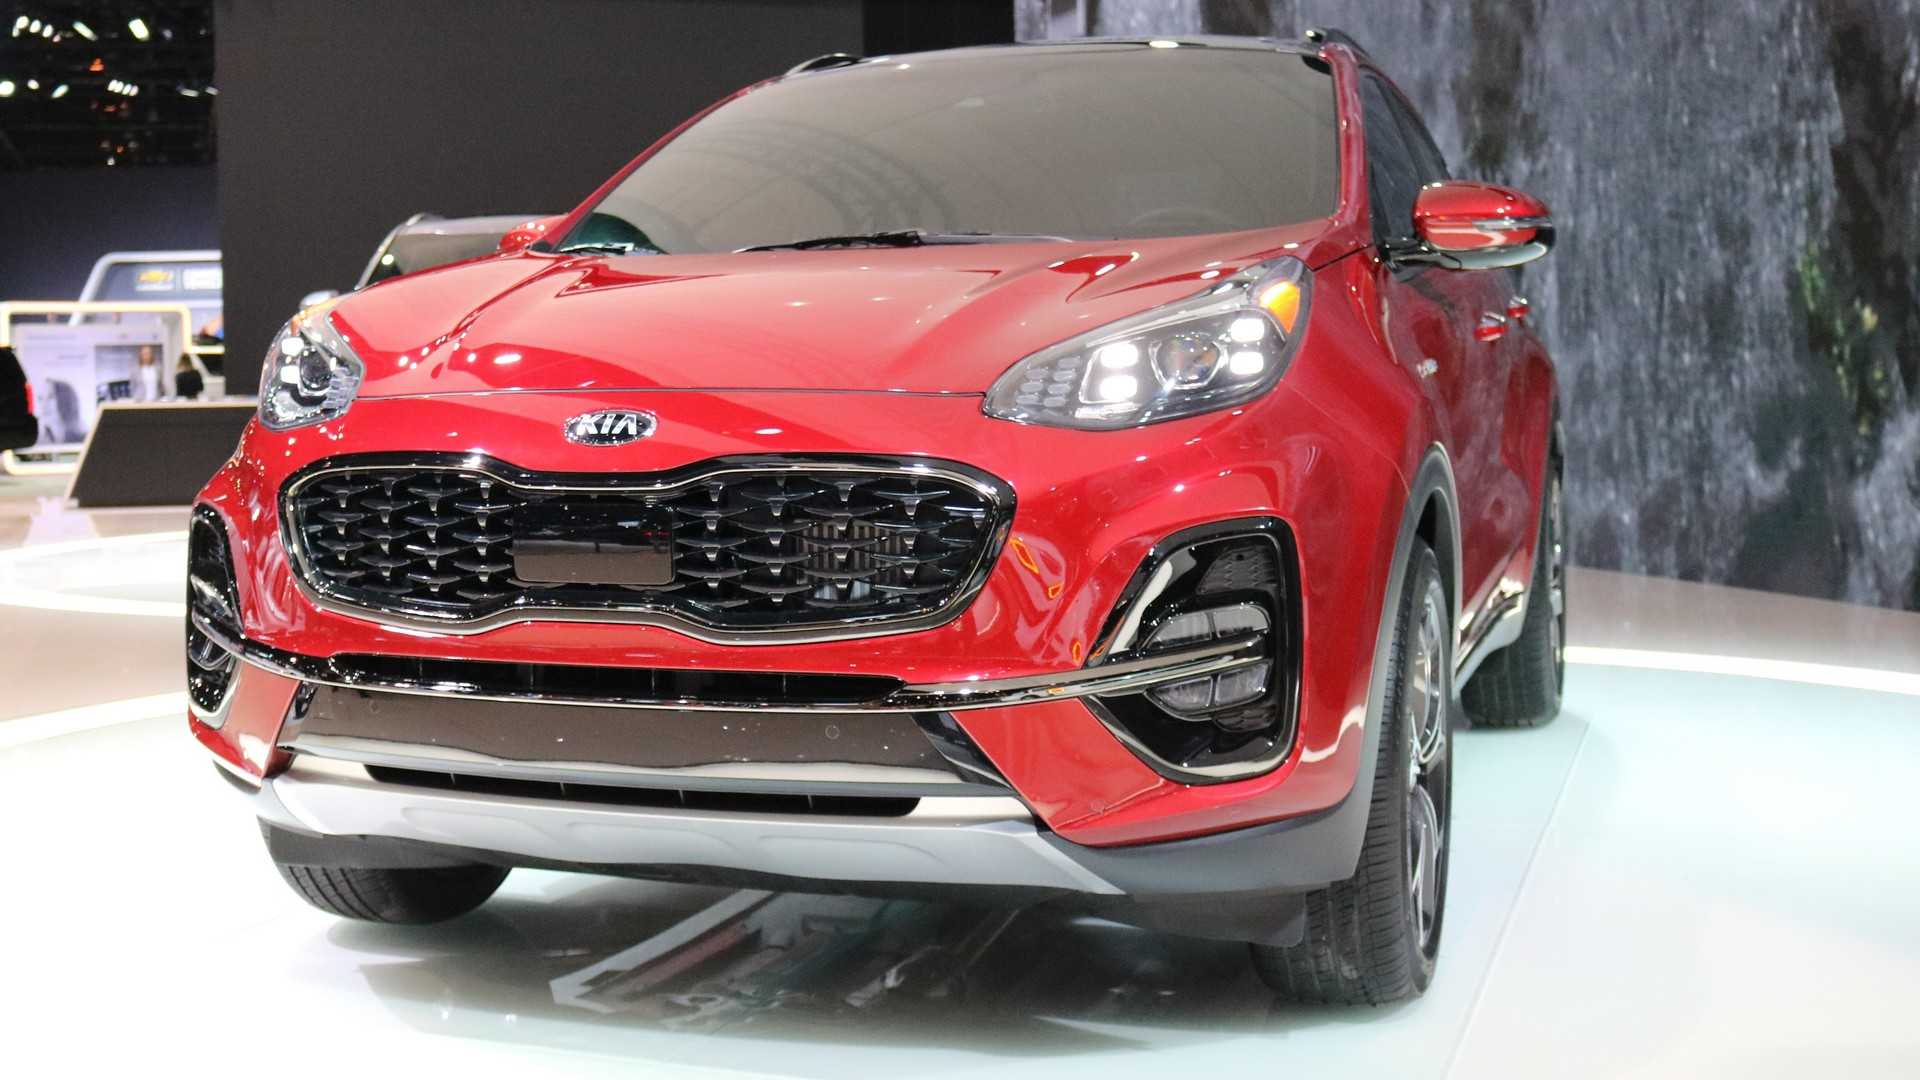 96 The Best Kia Cars 2020 Price And Release Date